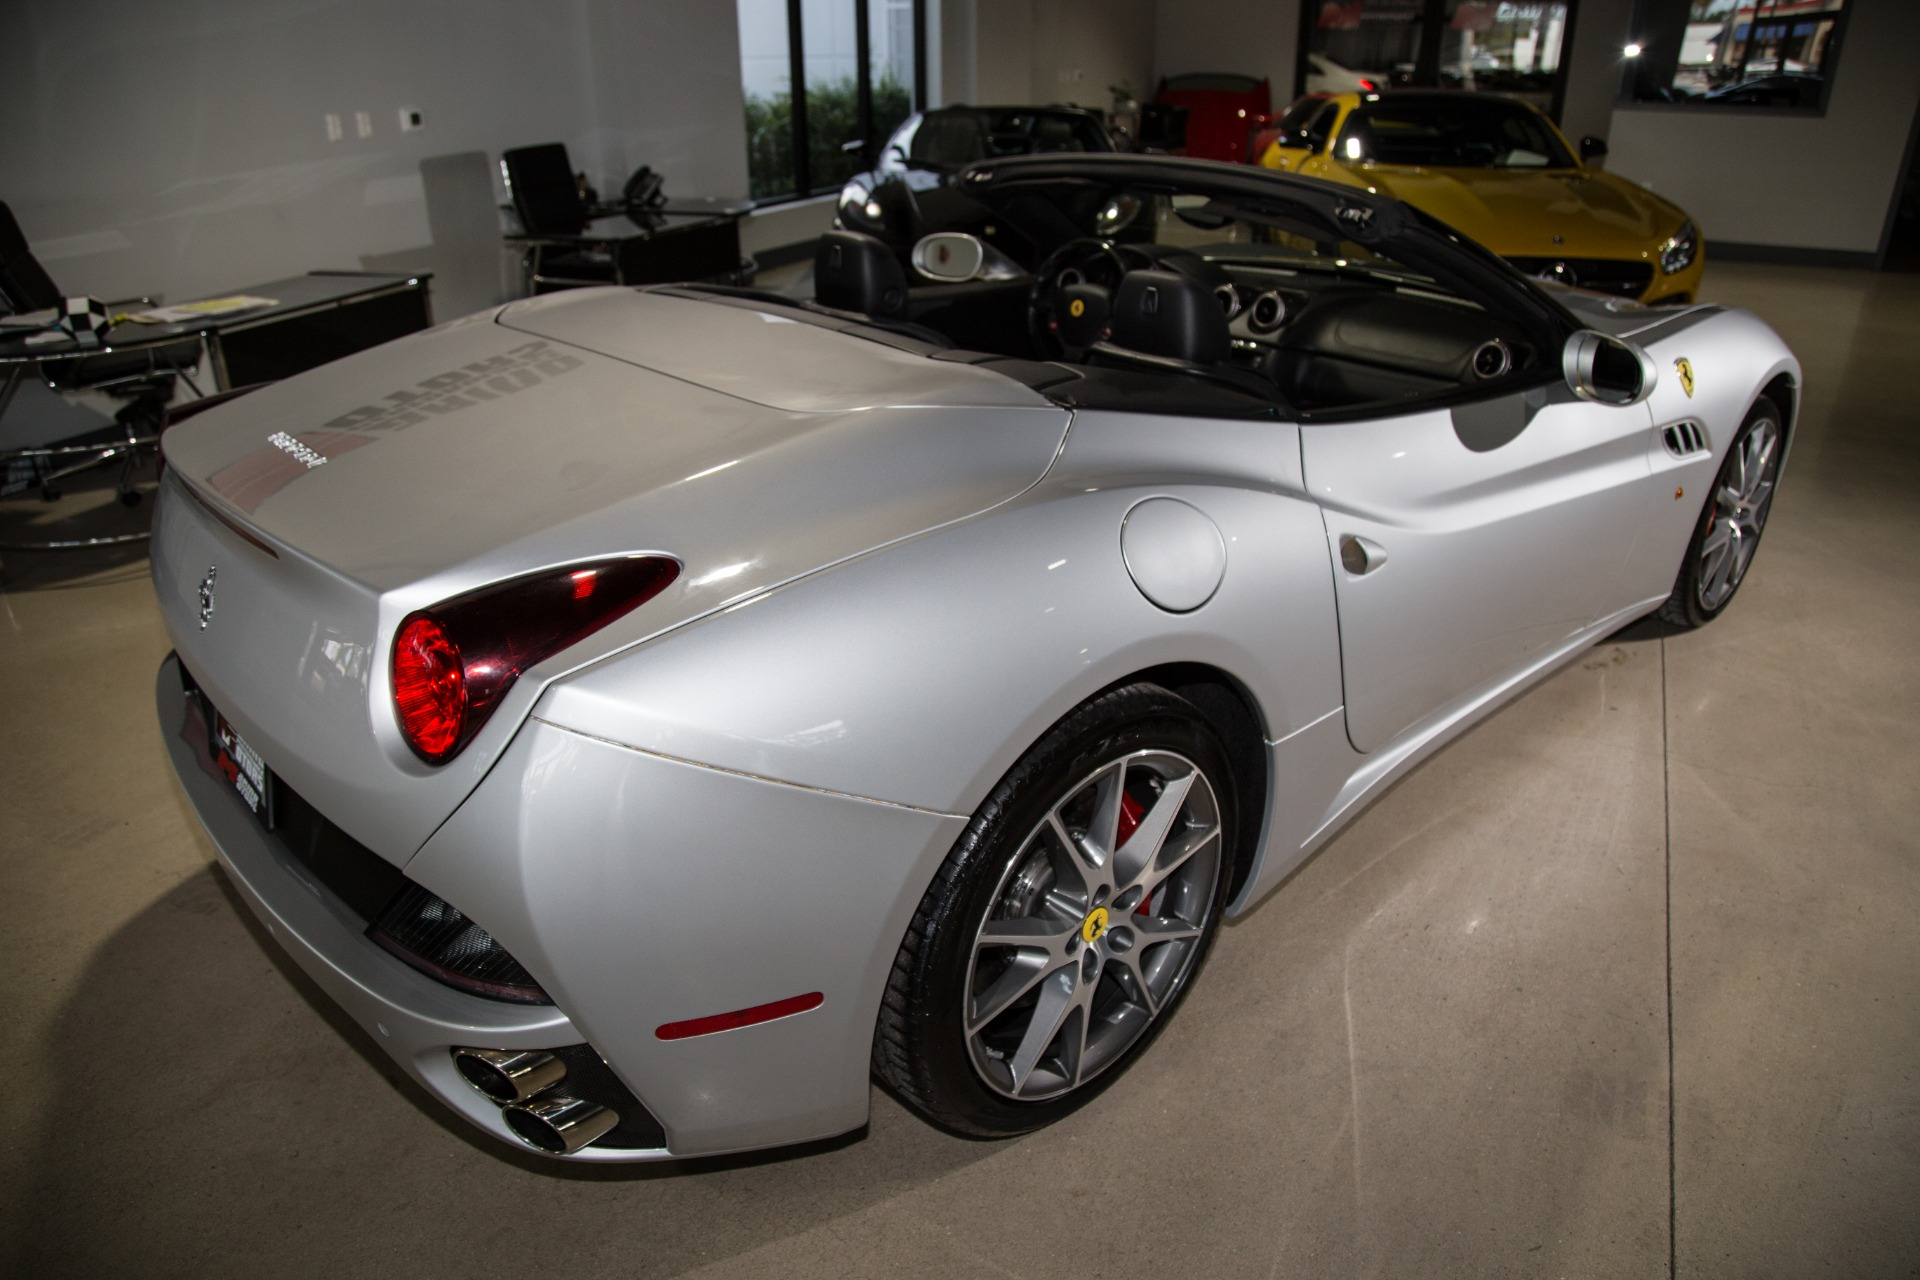 Used 2010 Ferrari California For Sale ($99,900)